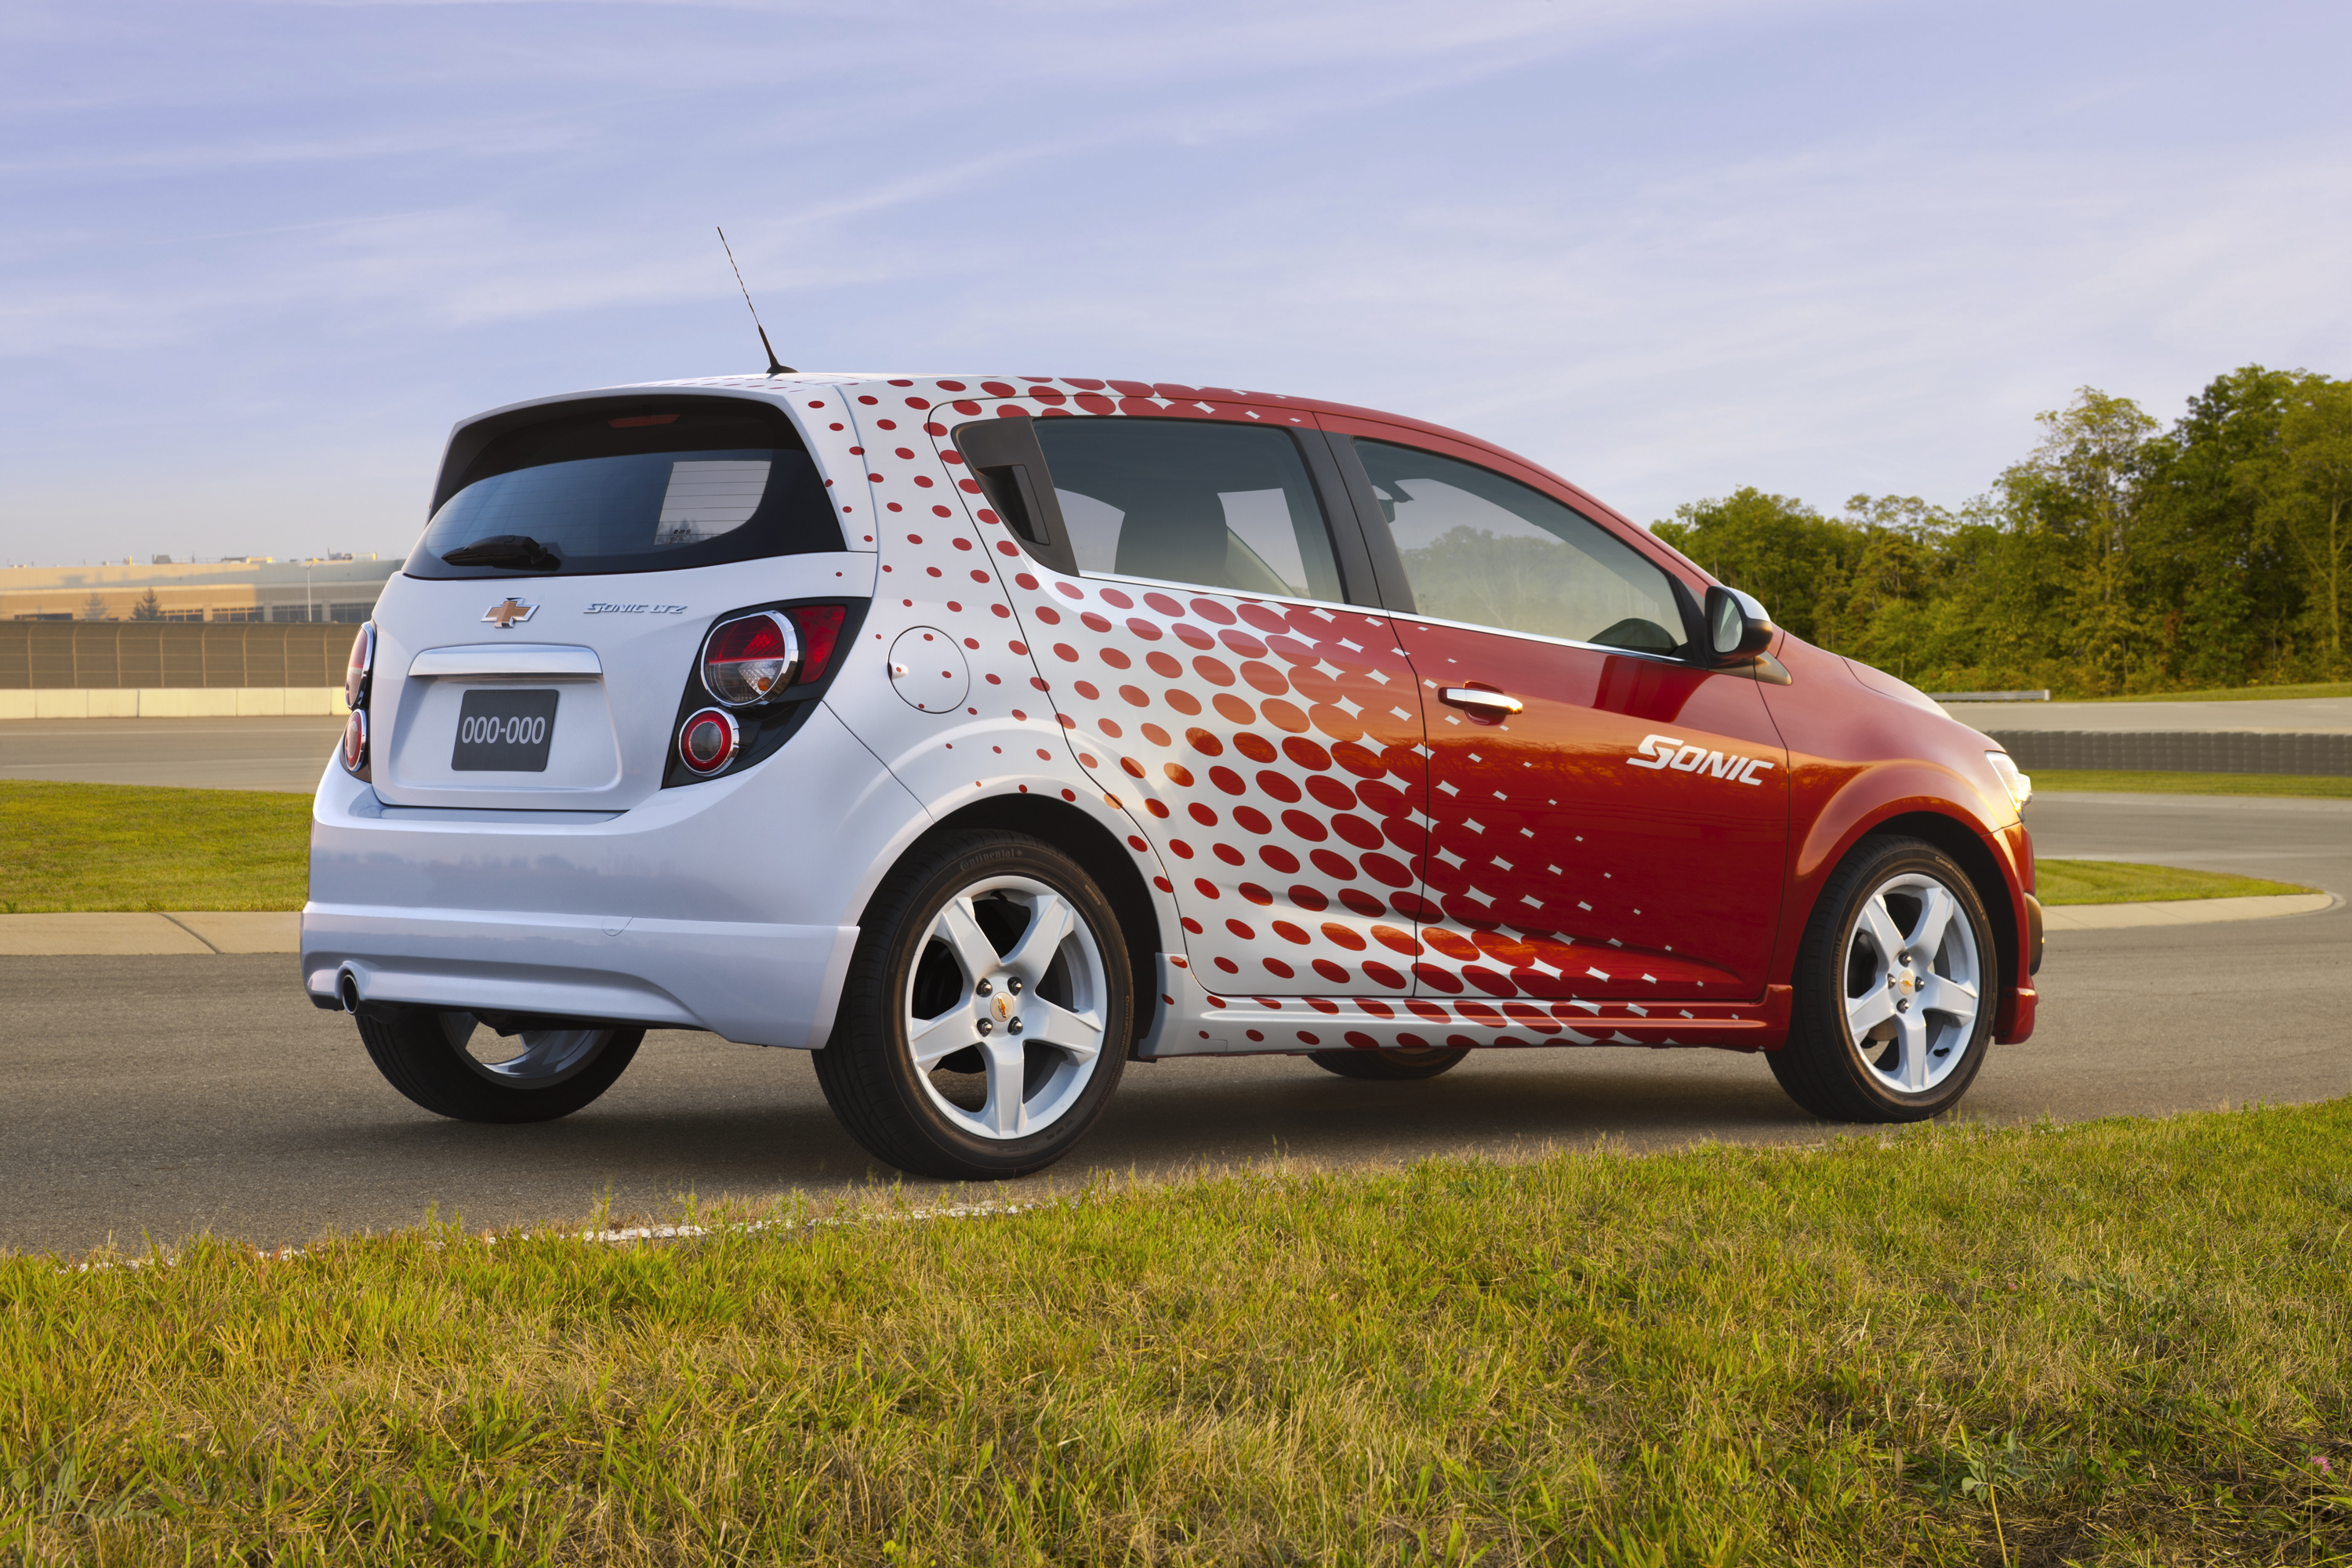 Chevrolet Sonic Owners Manual: Introduction